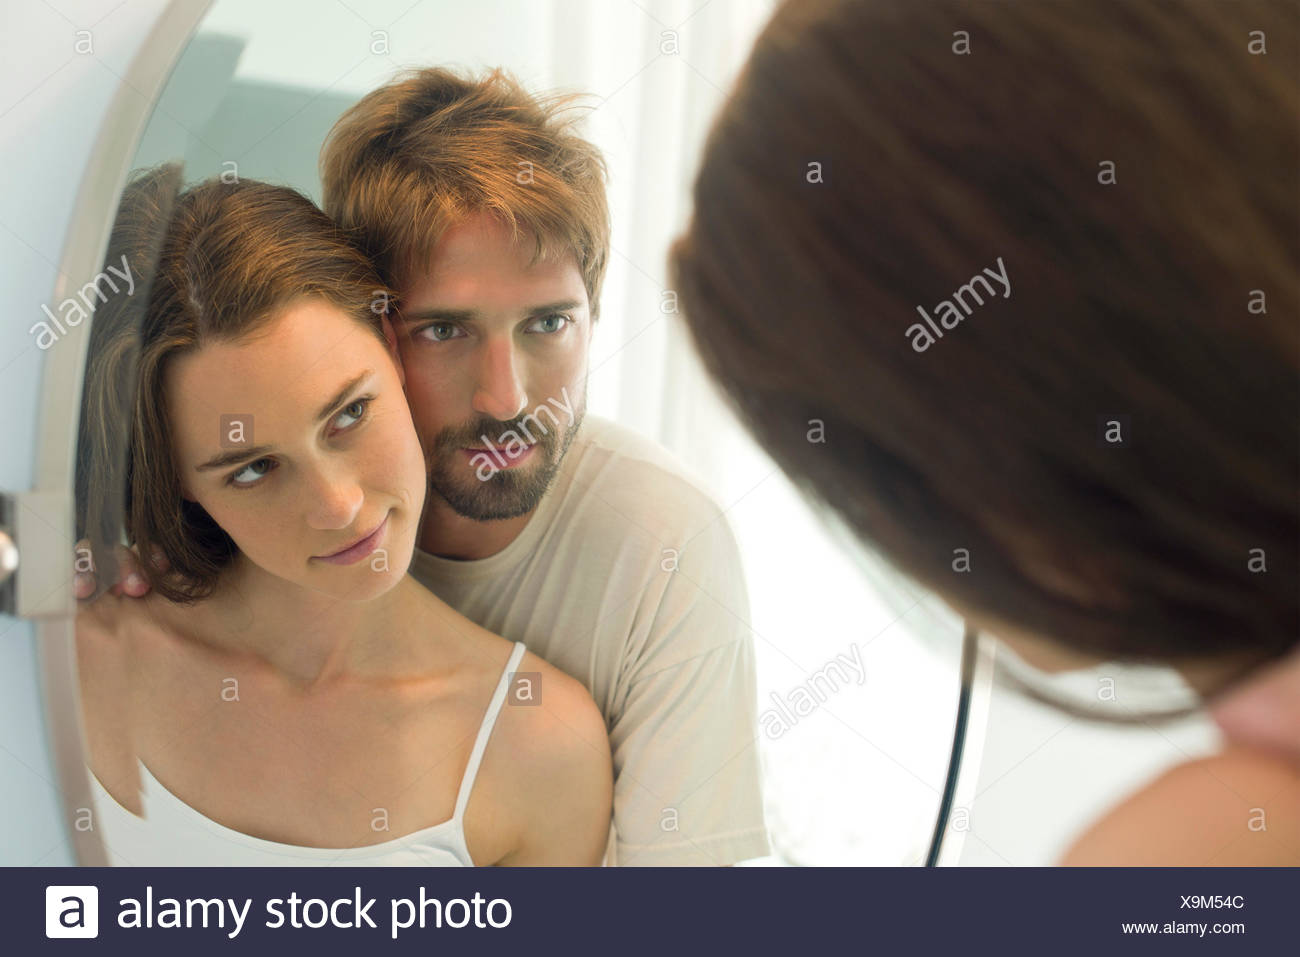 Couple cheek to cheek, looking at each other in mirror - Stock Image